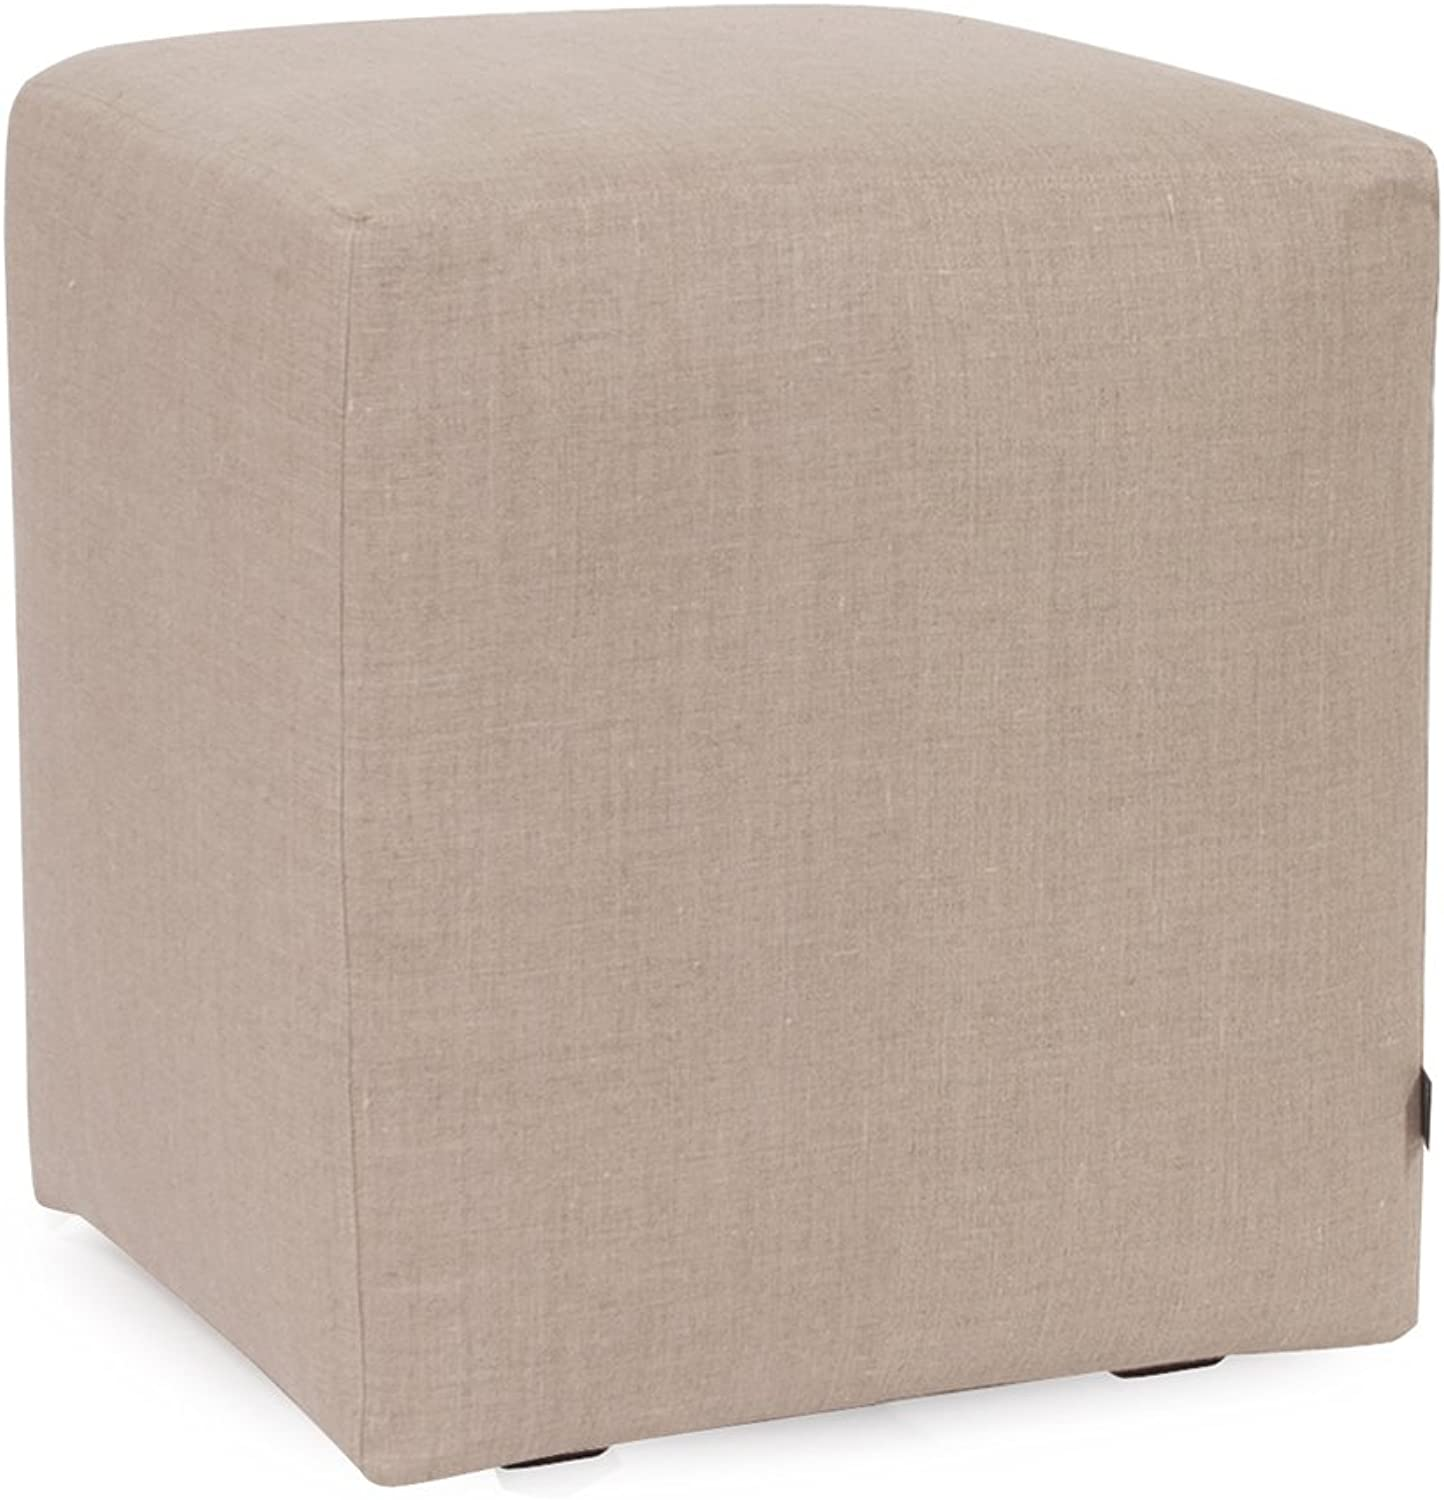 Howard Elliott Collection C128-610 Prairie Linen Universal Cube Cover, Natural